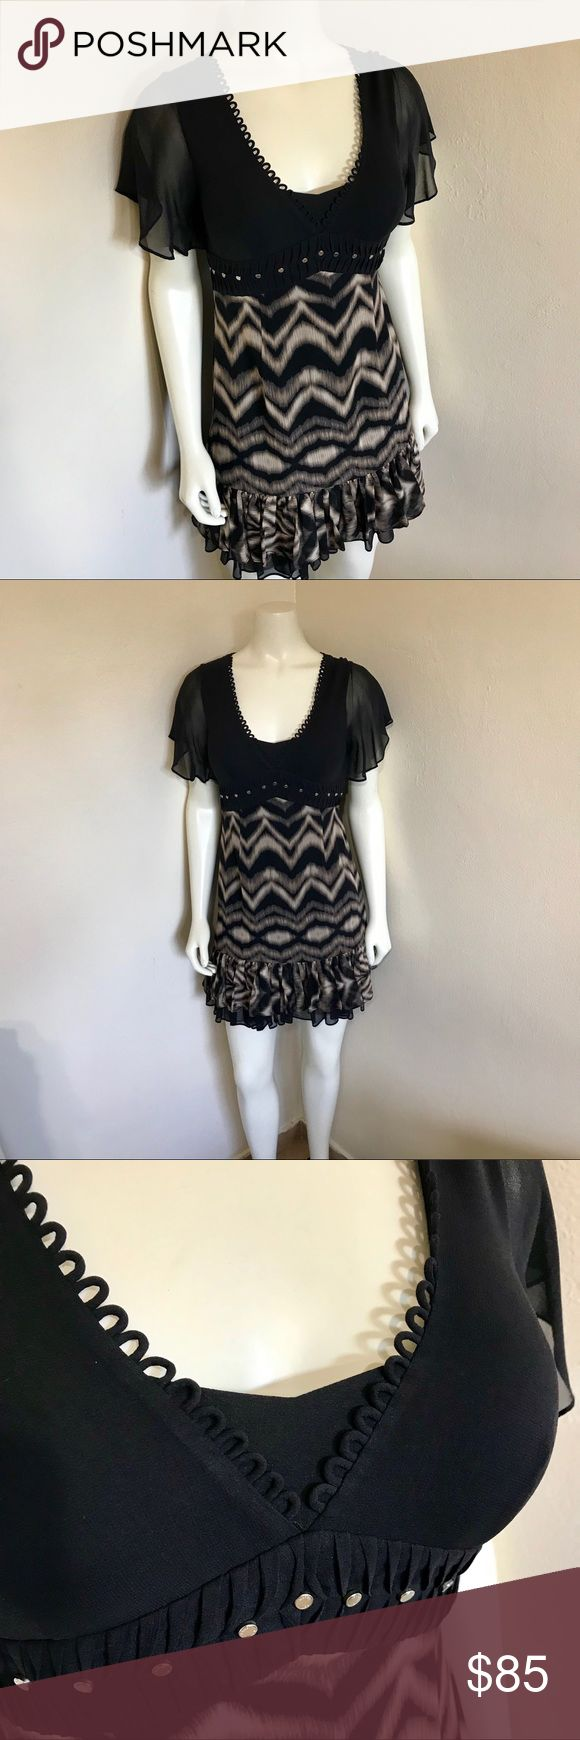 Karen Mullen Silk Chiffon Black Cocktail Dress XS Label-Karen Millen  Style-GORGEOUS Animal Print and Black Sexy Silk Chiffon Flirty Ruffled Empire Bust with Silver Studs Cocktail Dress, Short Sleeves , Side zip, fully lined. 